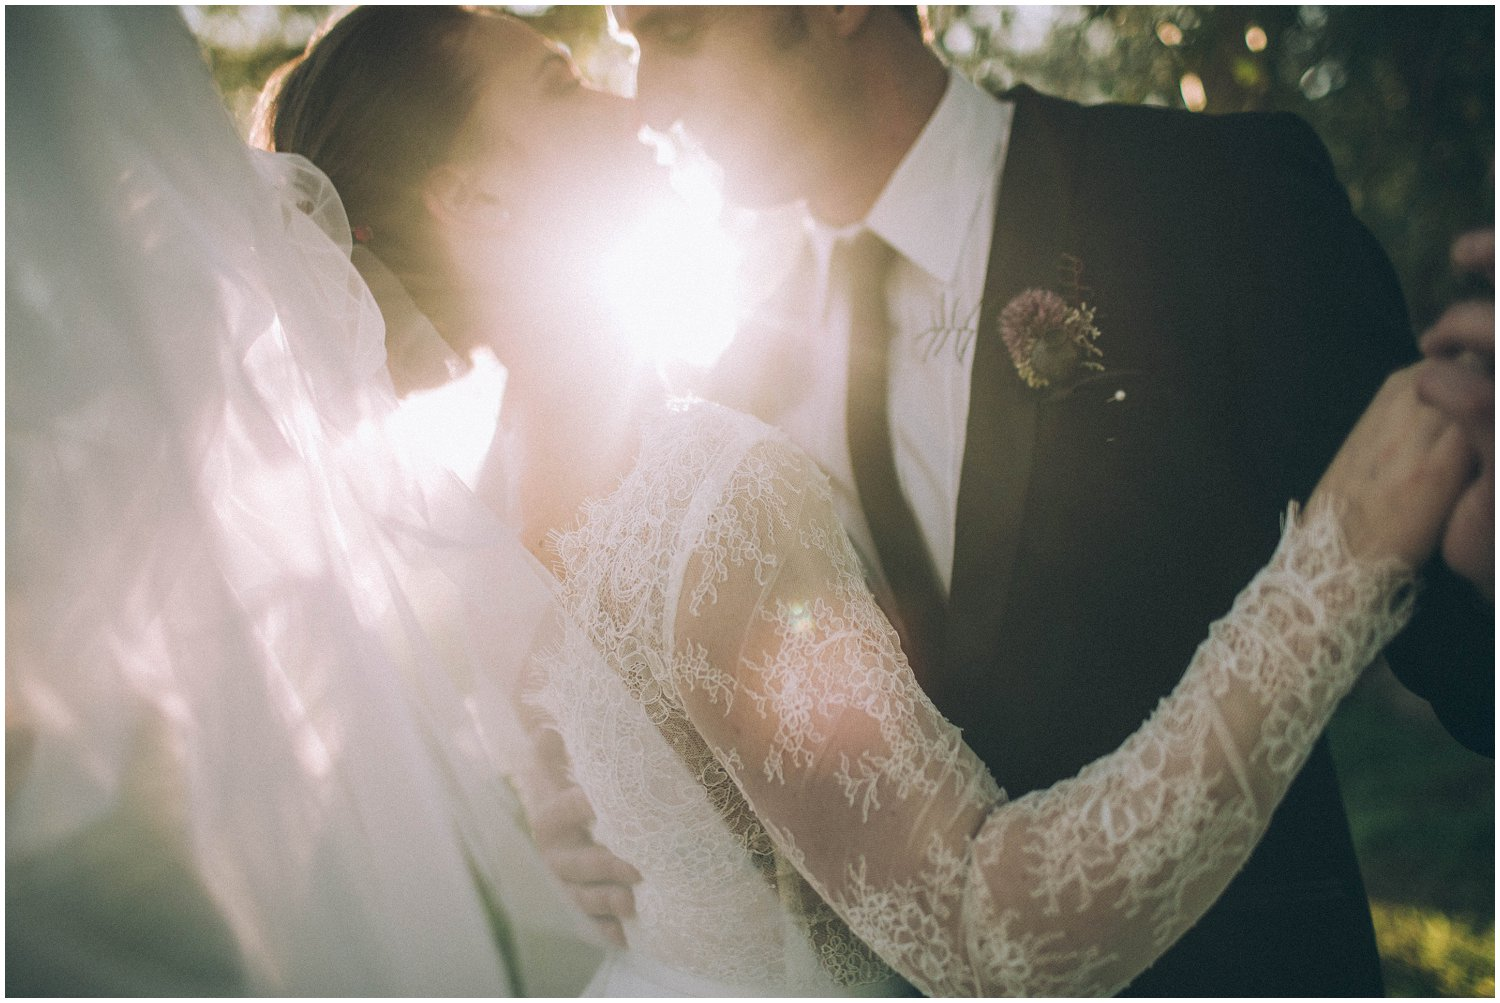 Top Wedding Photographer Cape Town South Africa Artistic Creative Documentary Wedding Photography Rue Kruger_1224.jpg